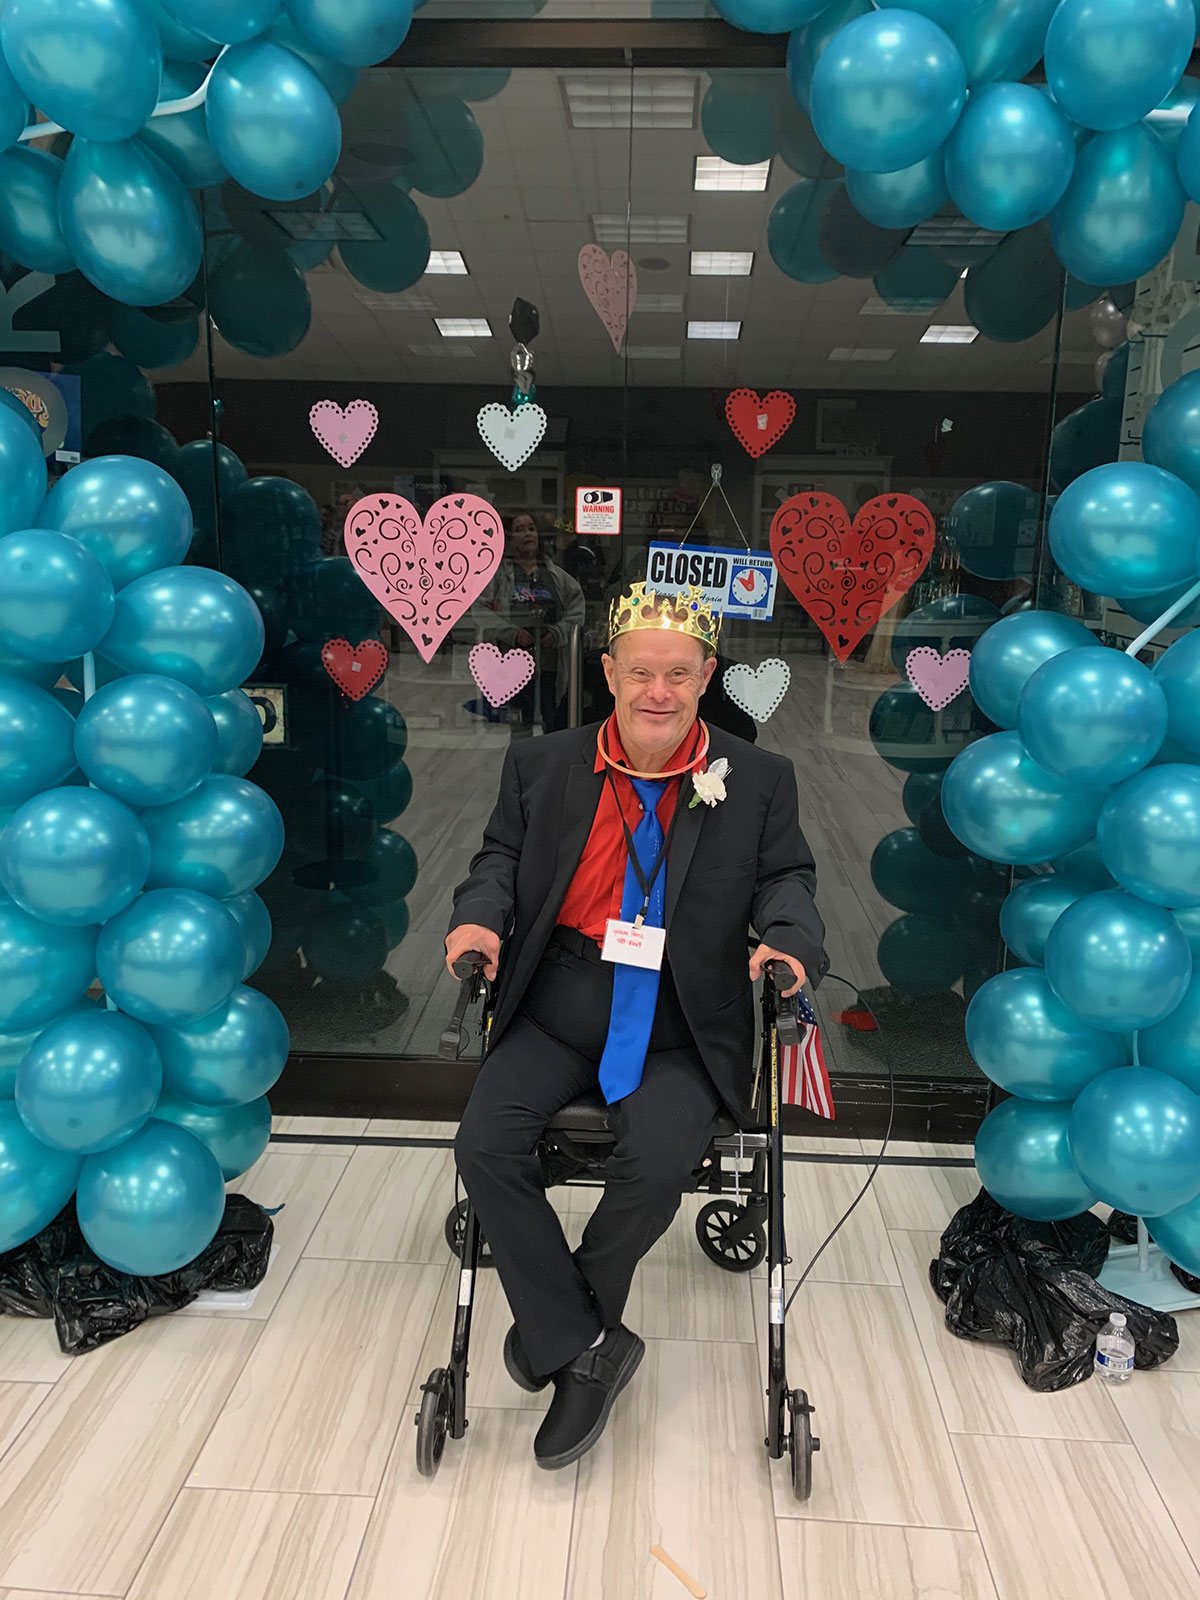 Looking like the king of the castle riding in to celebrate with teal balloons.